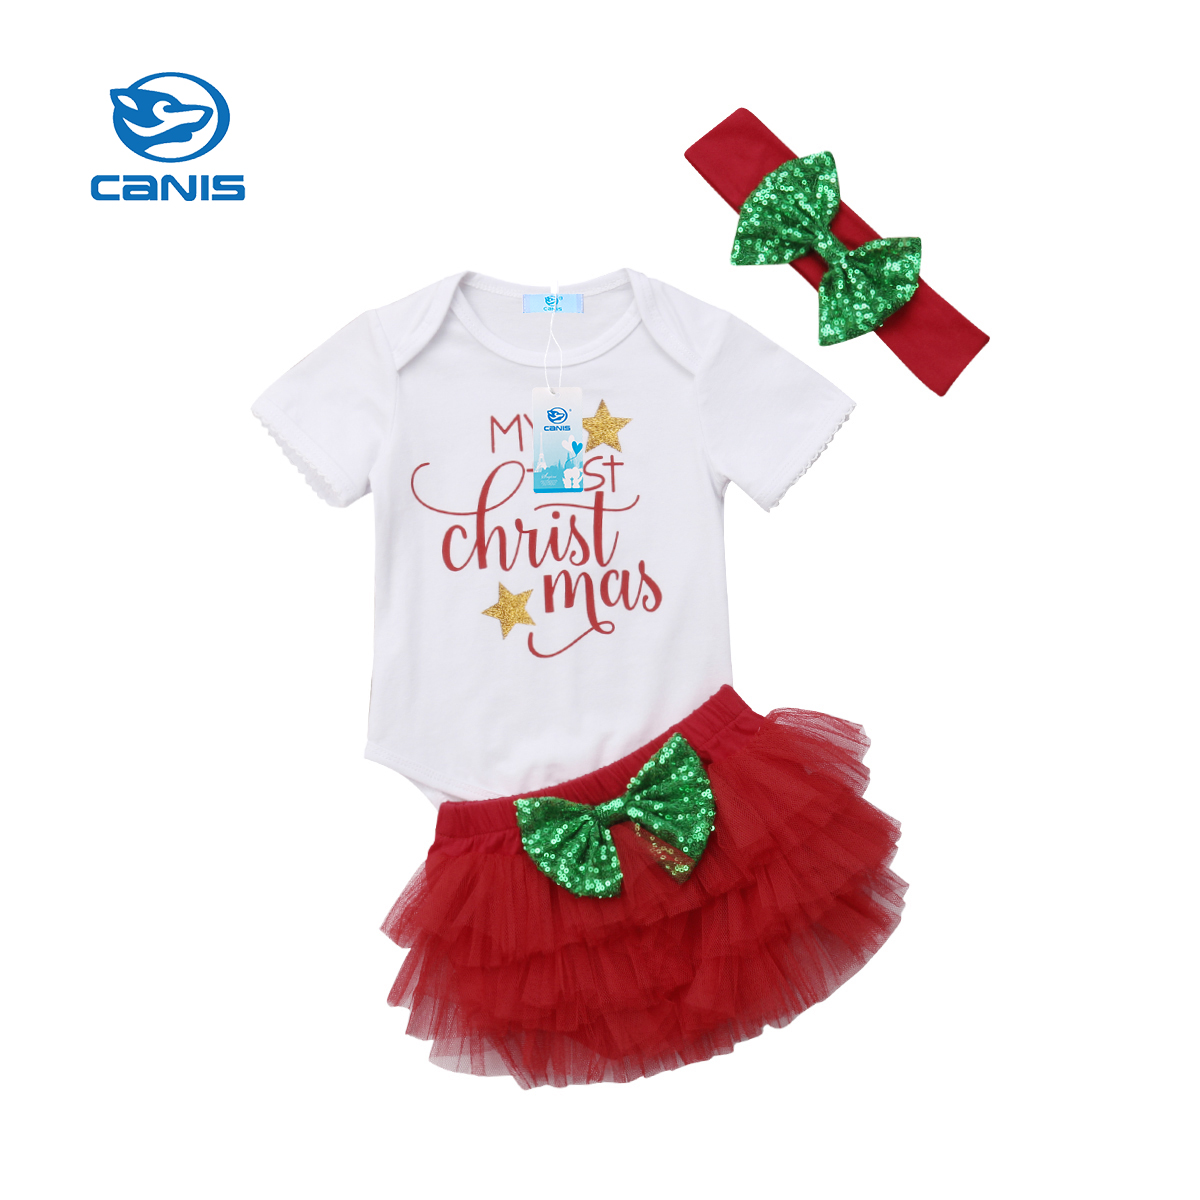 Infant Baby Girls My First Christmas Outfits Romper Tutu Shorts ...